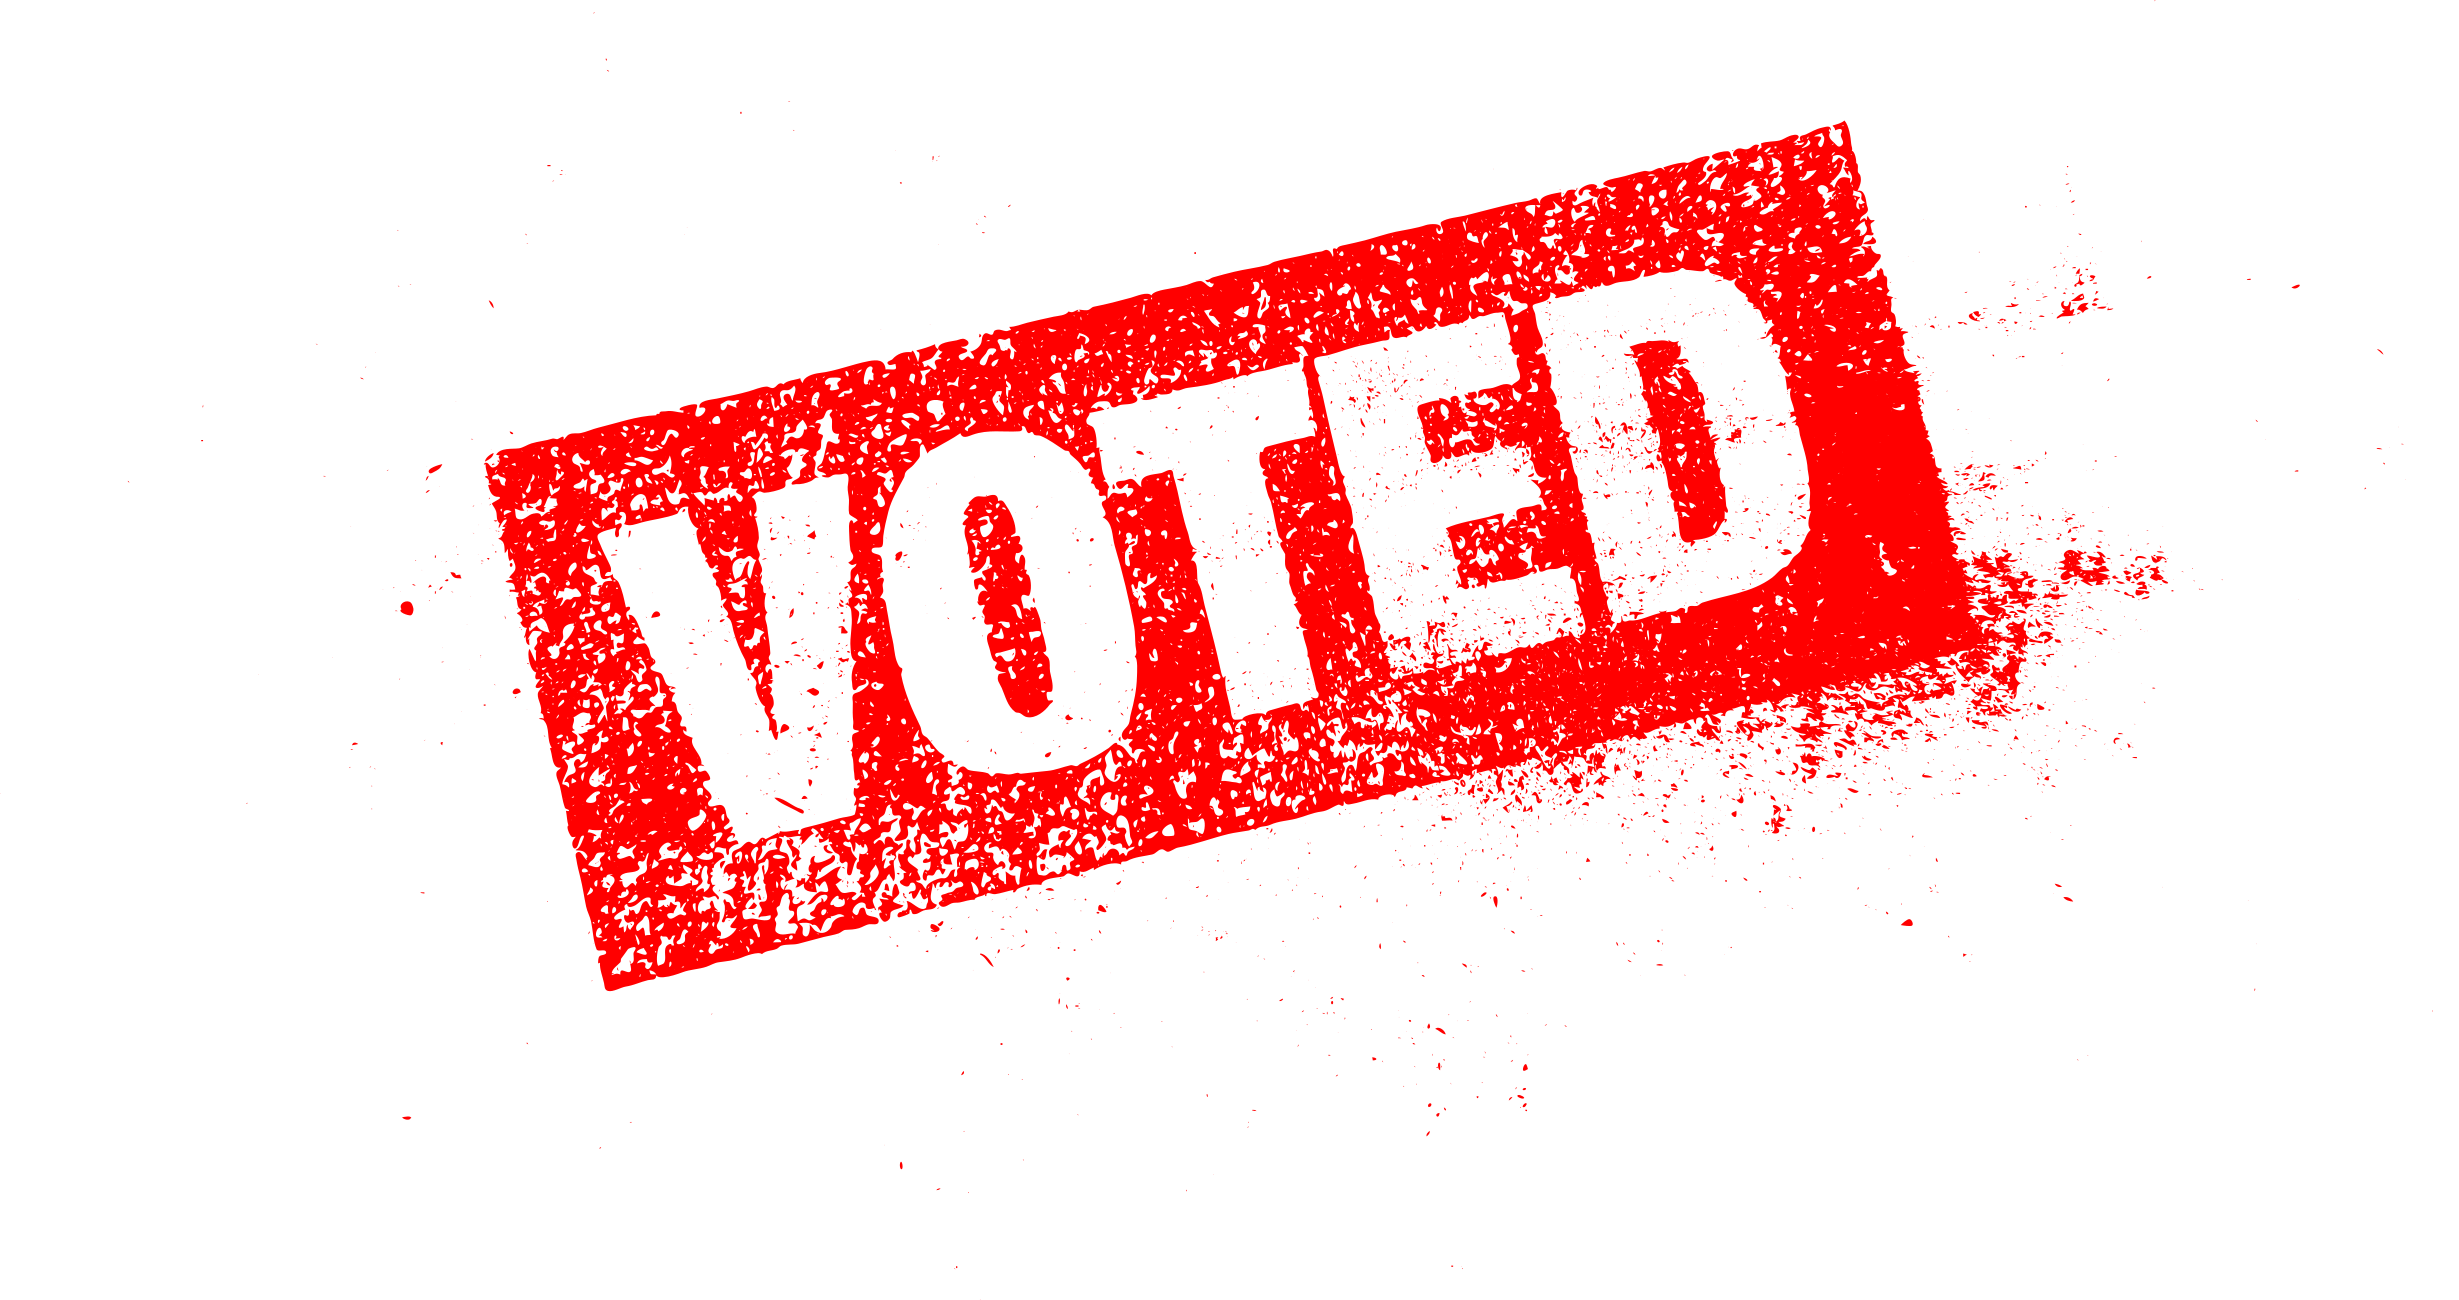 voted-stamp-6.png